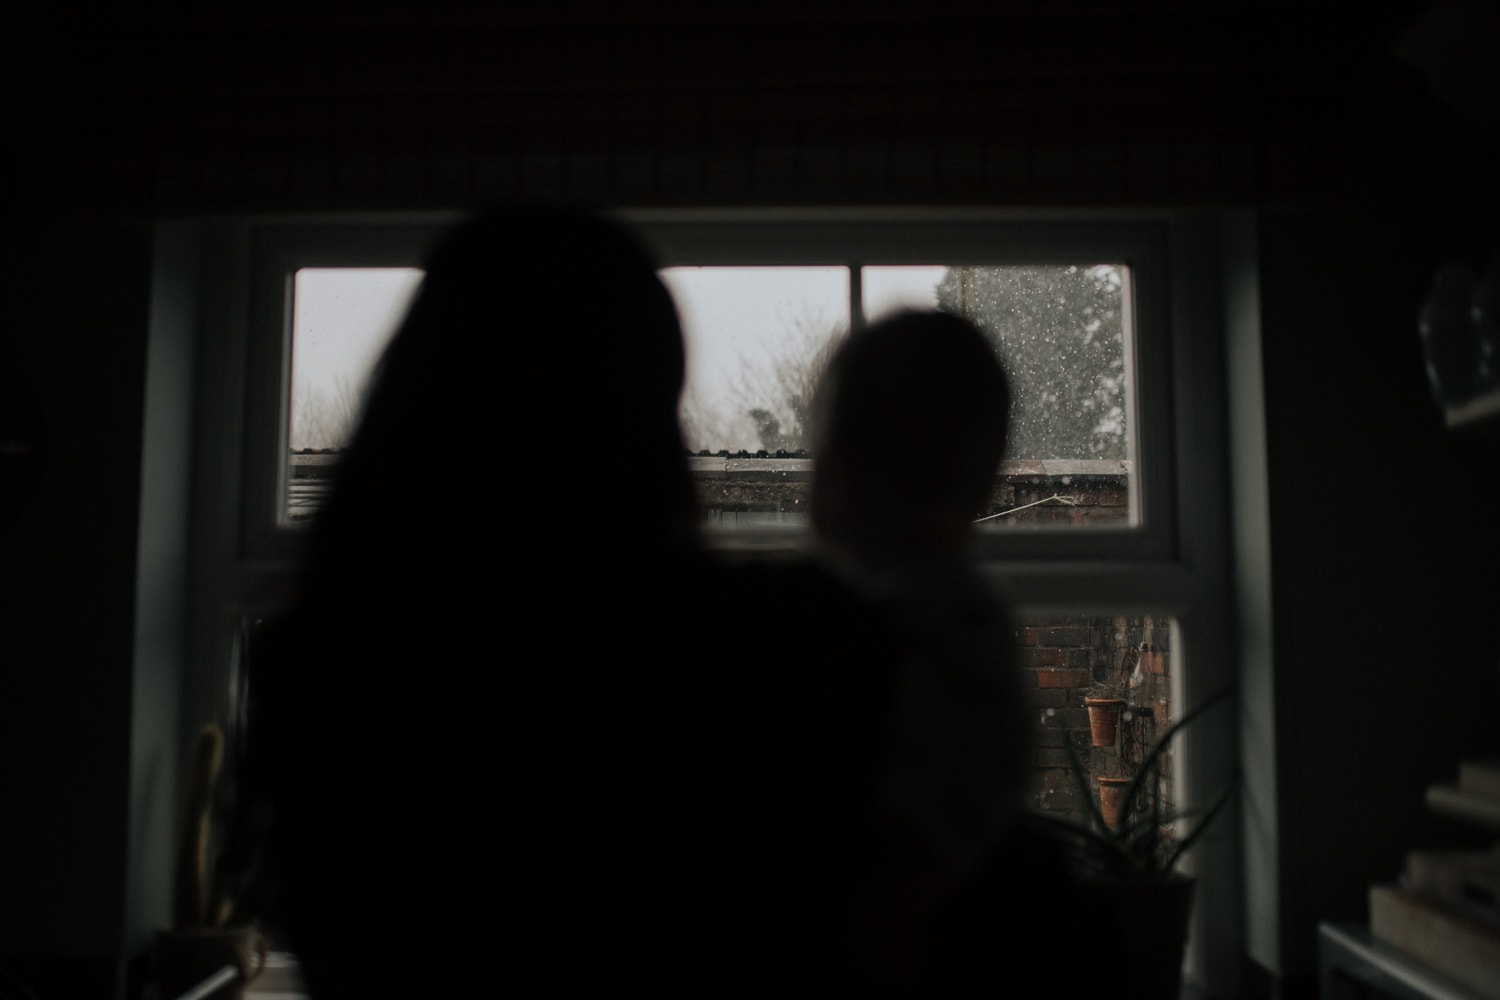 Watching the snow falling in the garden